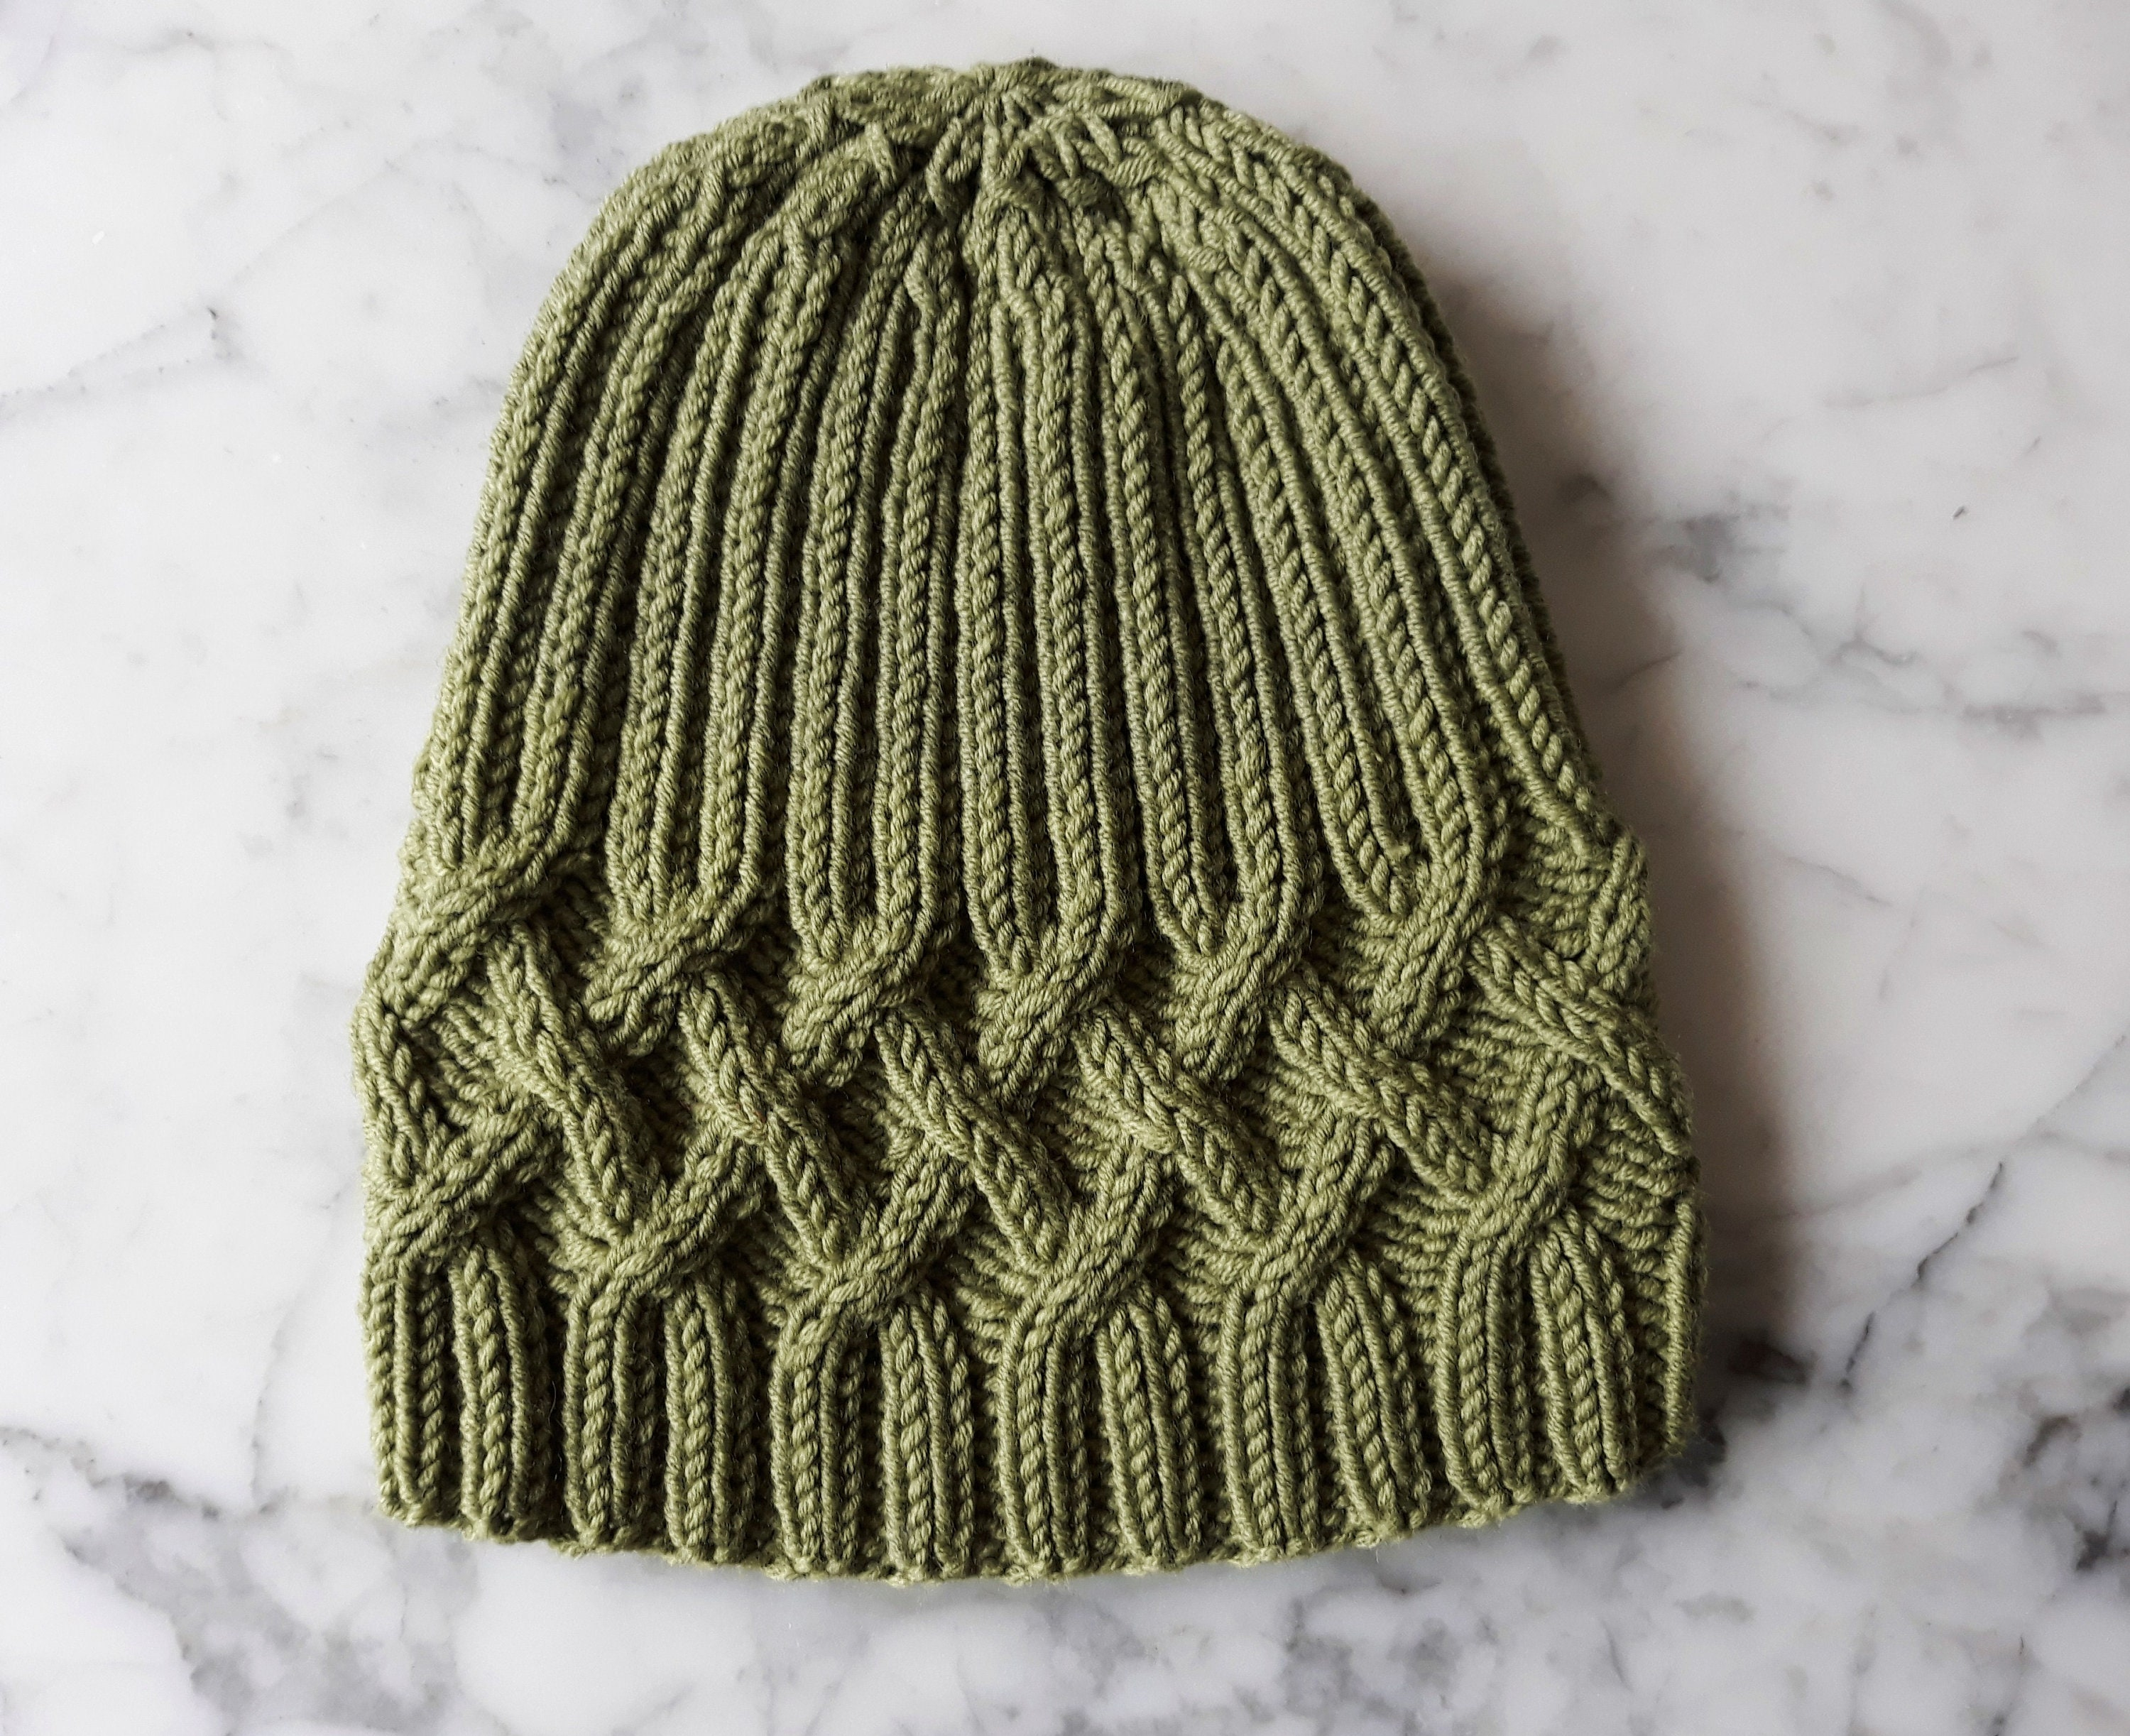 8ed6775a4 Hat knitting pattern: instant download PDF. Beanie hat pattern. Cable ...